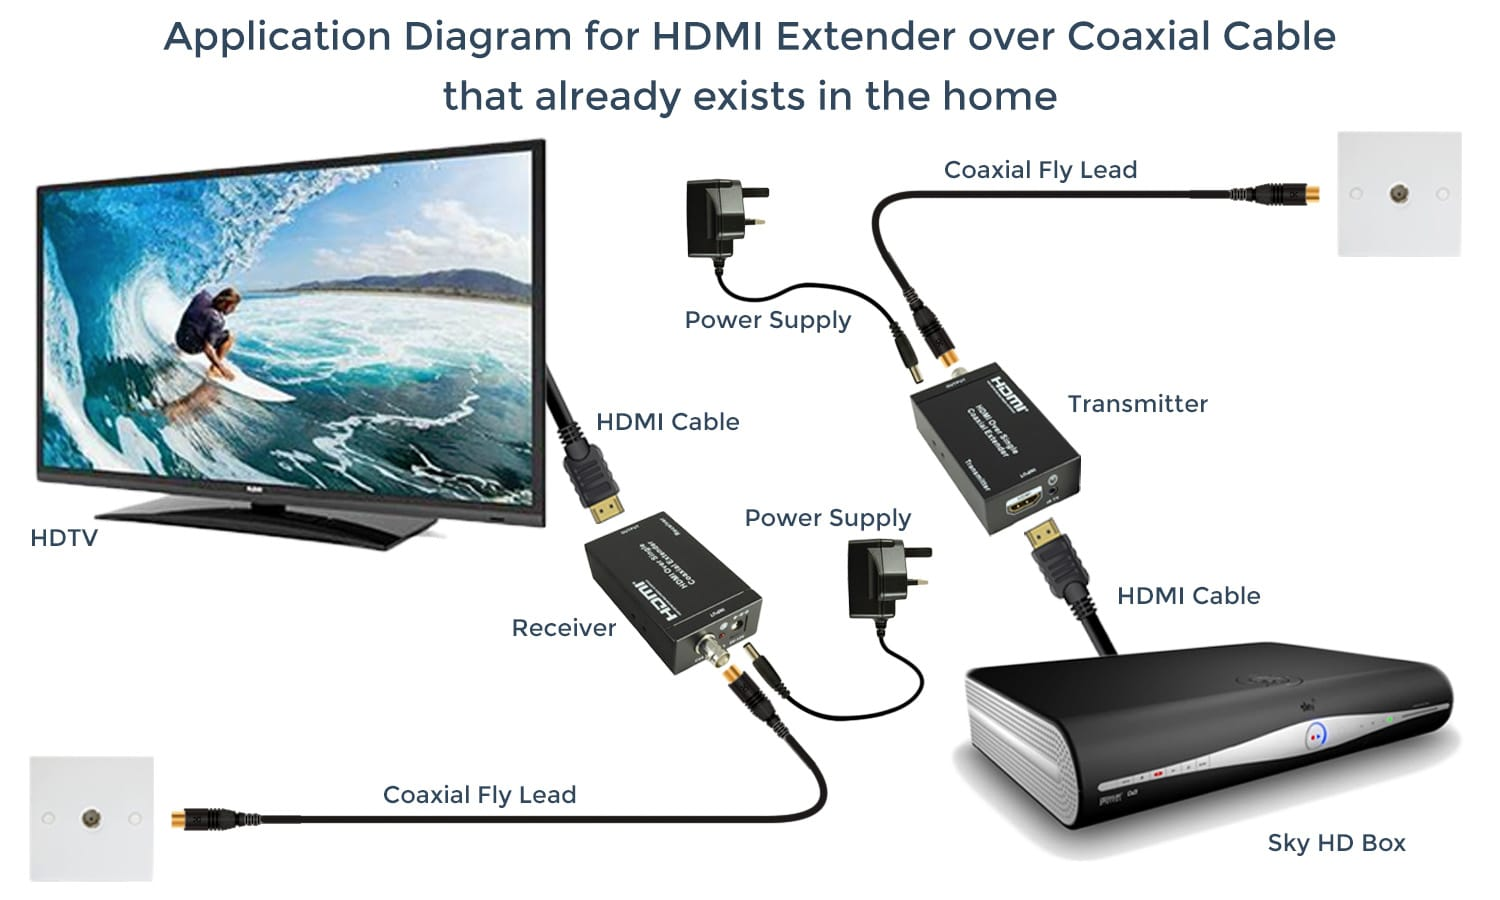 Hdmi Extenders Trade Works Coax Cable And Satellite Dish Wiring Diagrams Extender Over Coaxial Already Exists In The Home